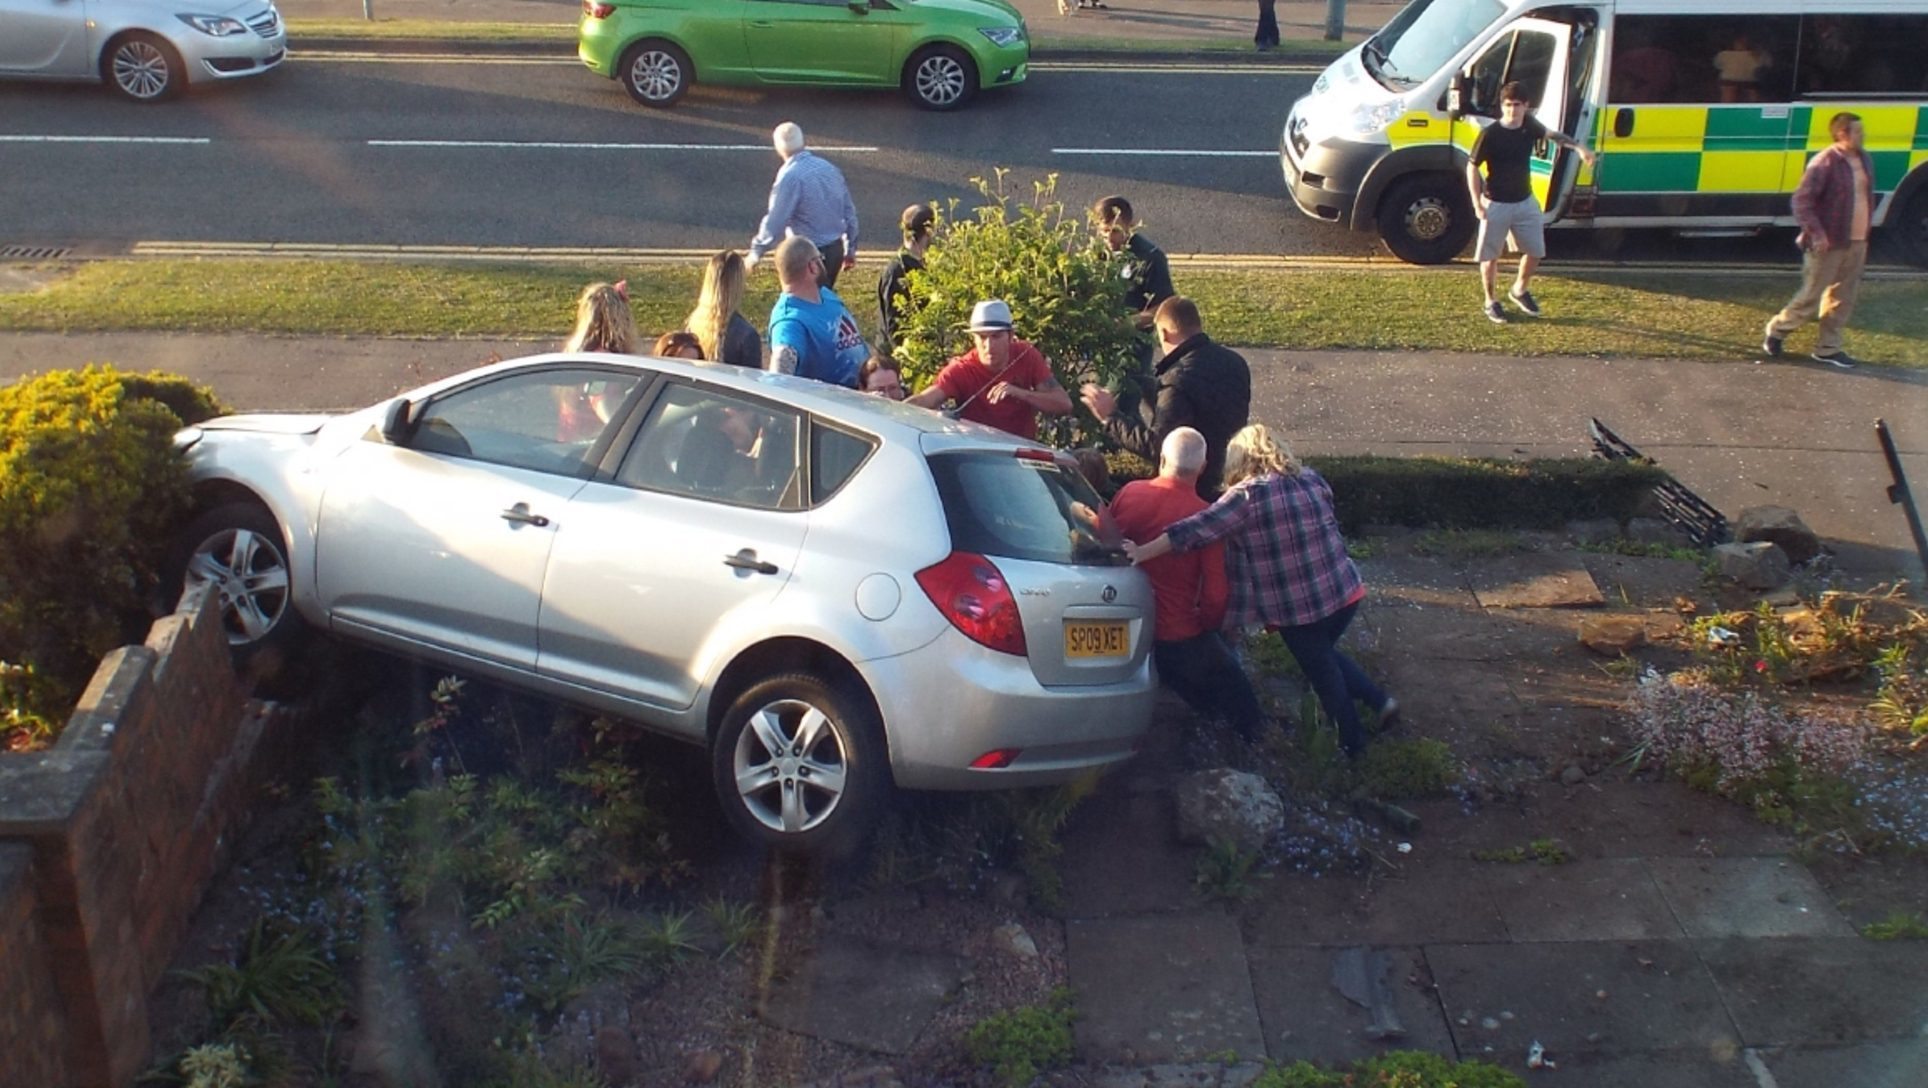 Neighbours help right the car which crashed into a garden in South Parks Road, Glenrothes